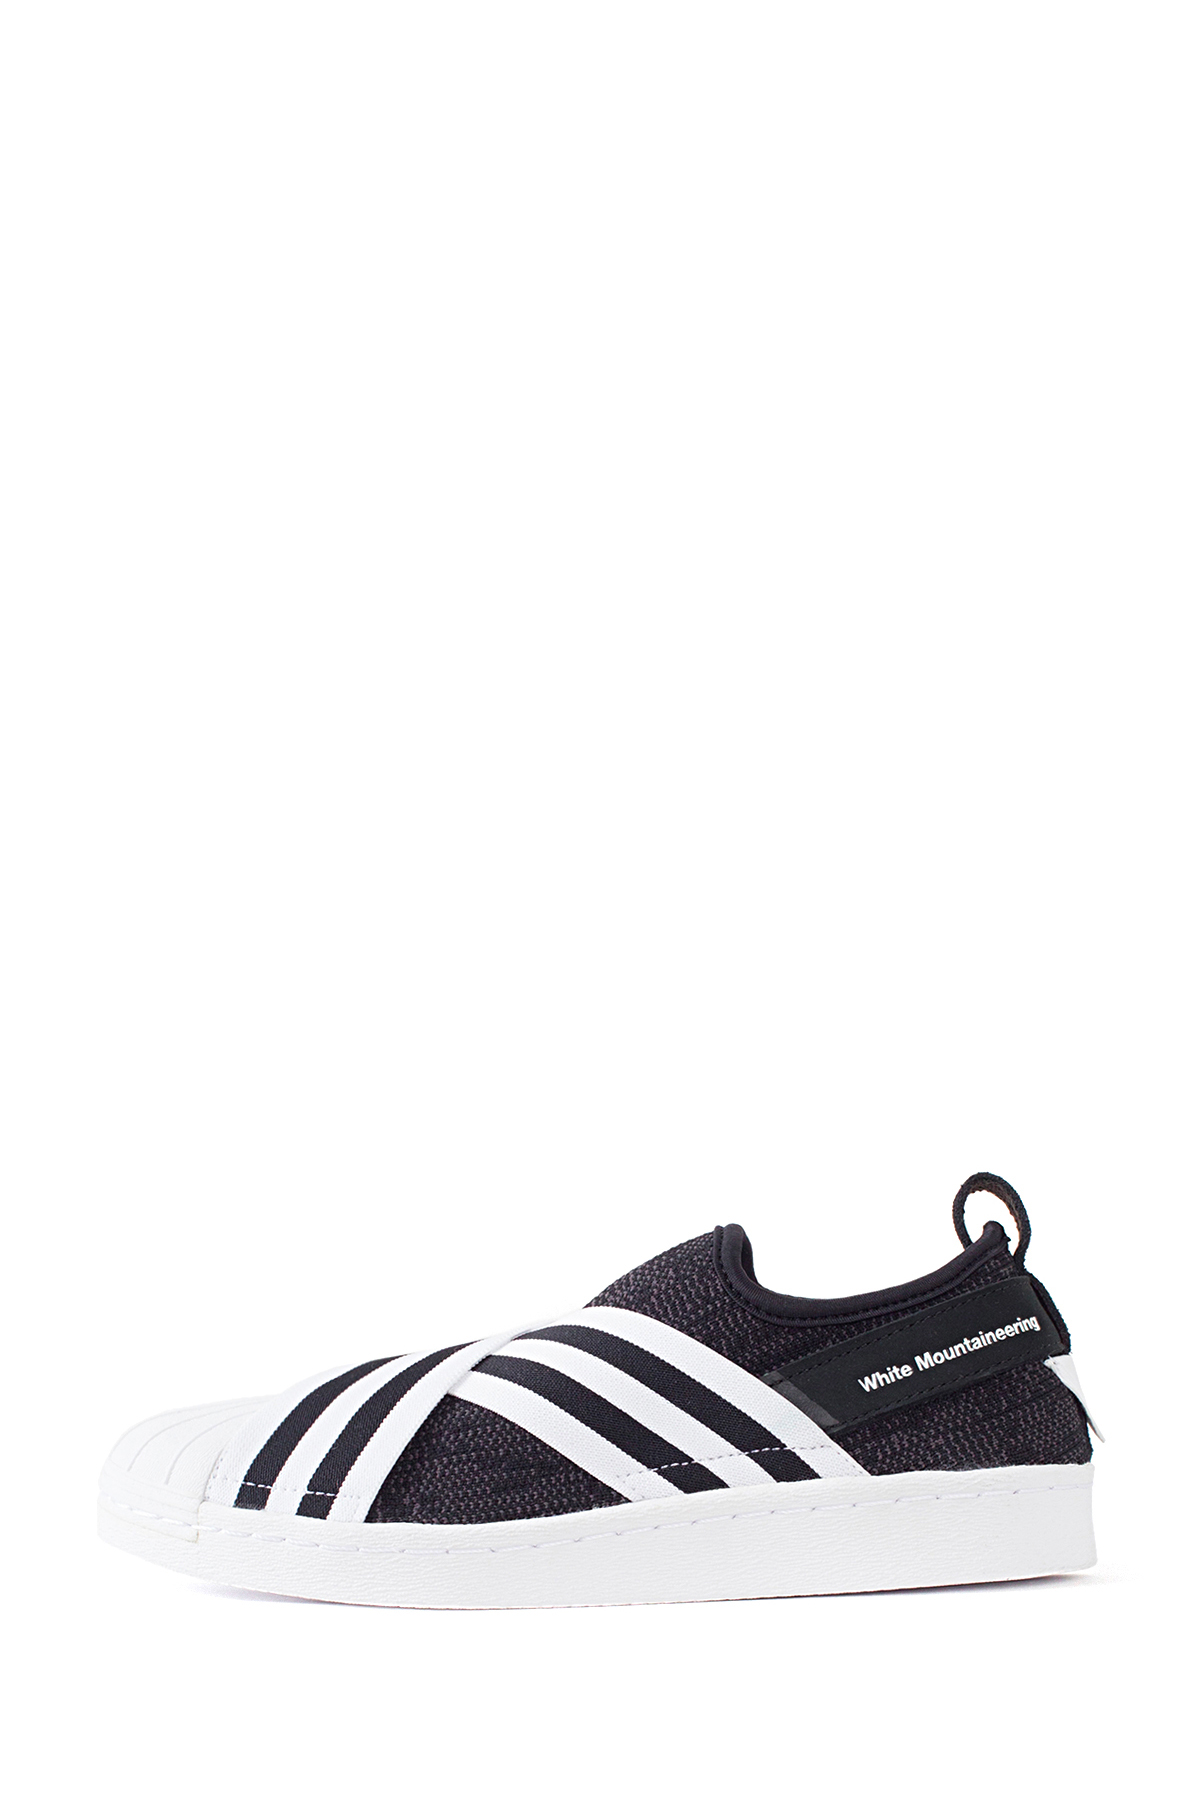 WM x adidas Originals : SUPERSTAR SLIP-ON (Black)